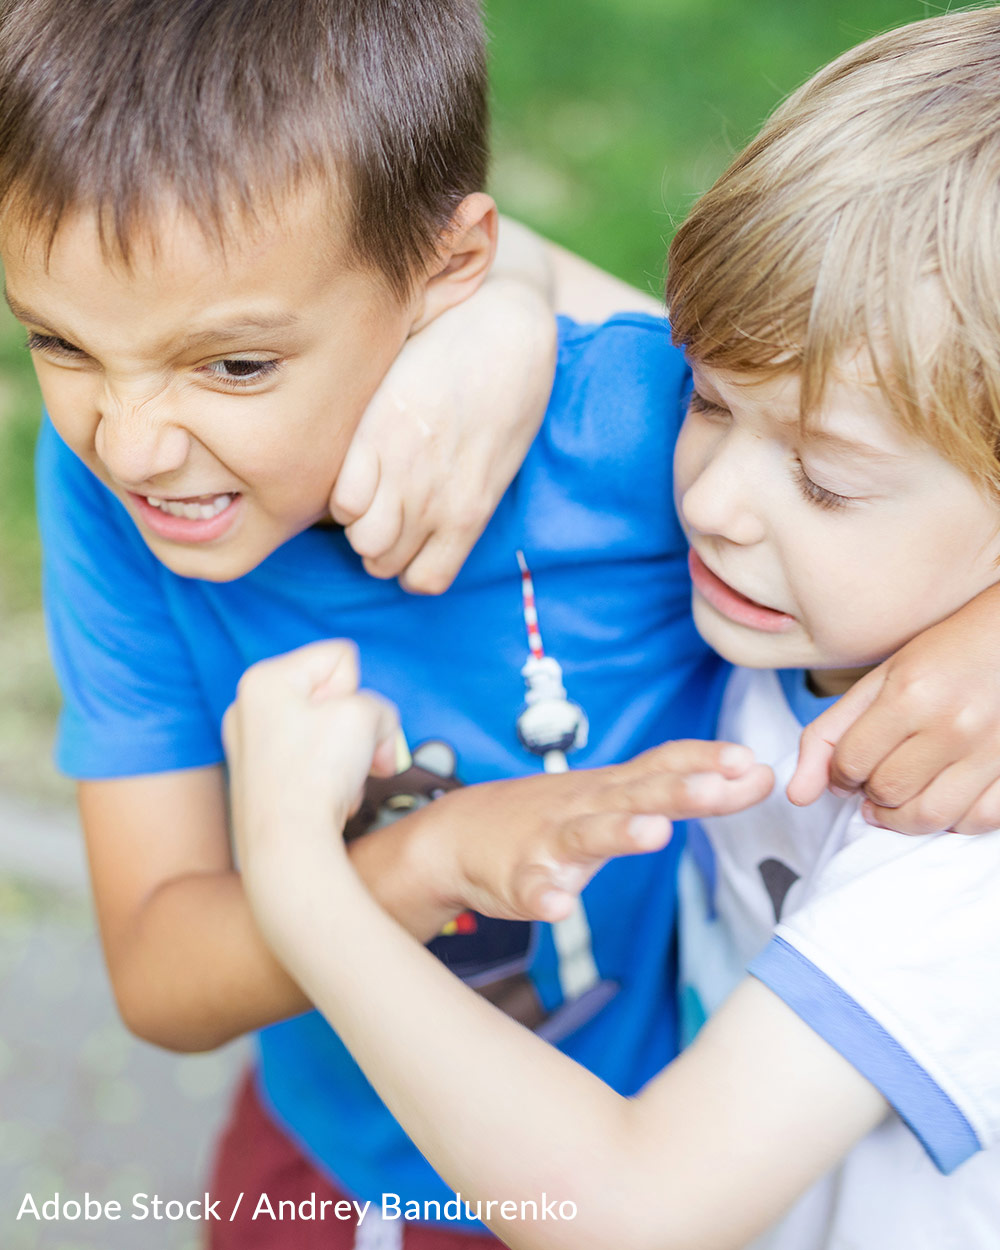 Children need to see conflict resolution modeled in a healthy way.